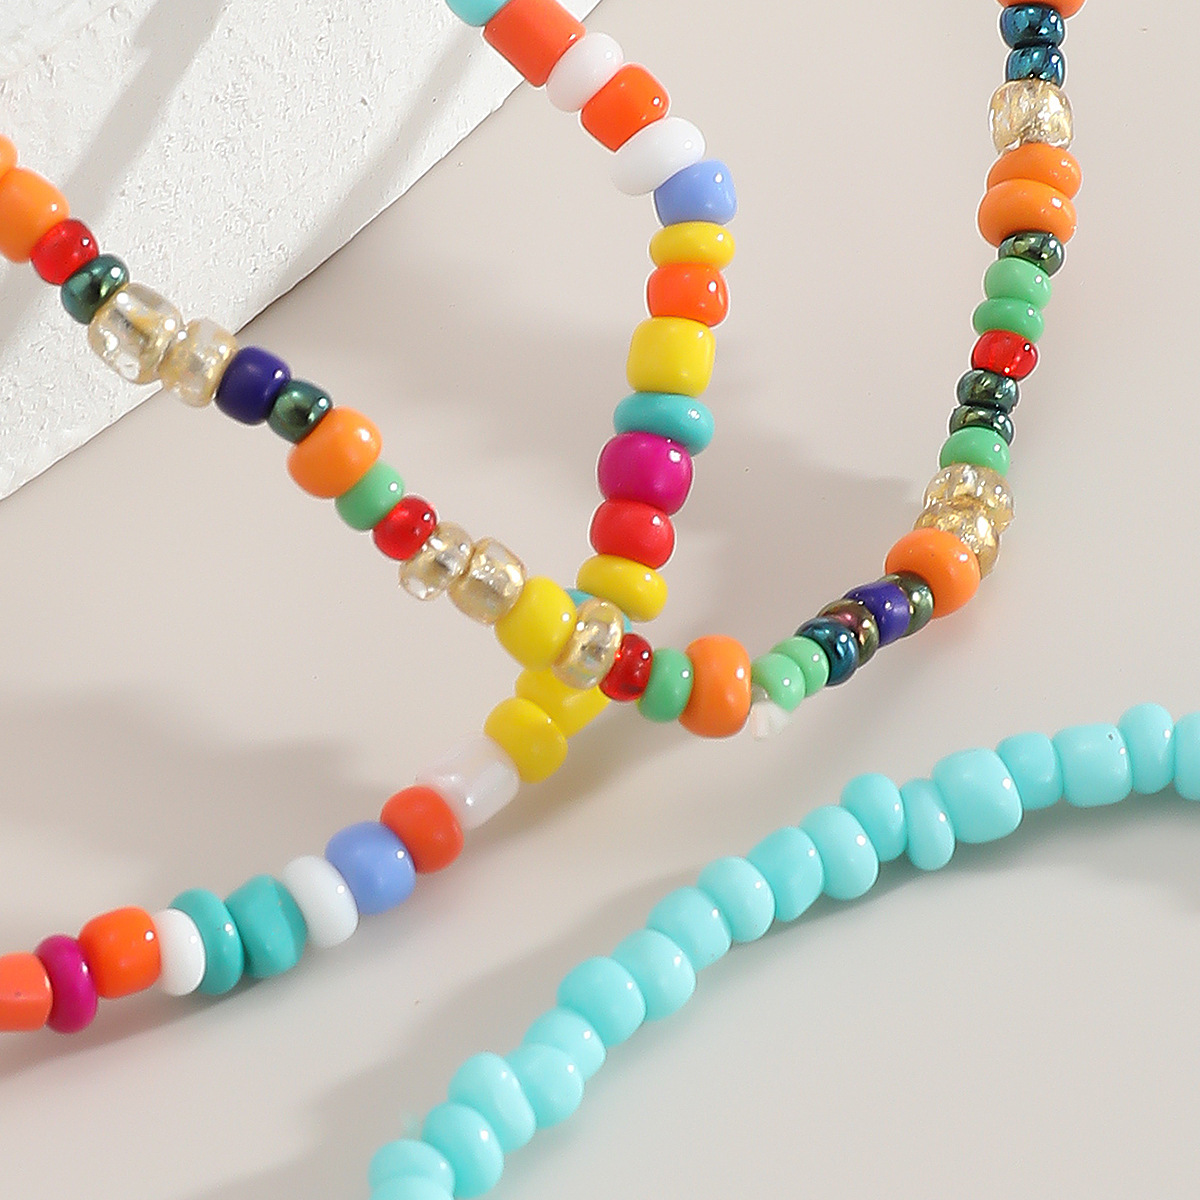 creative and fashionable jewelry bohemian style rice bead set bracelet color jewelry wholesale nihaojewelry NHXR236351